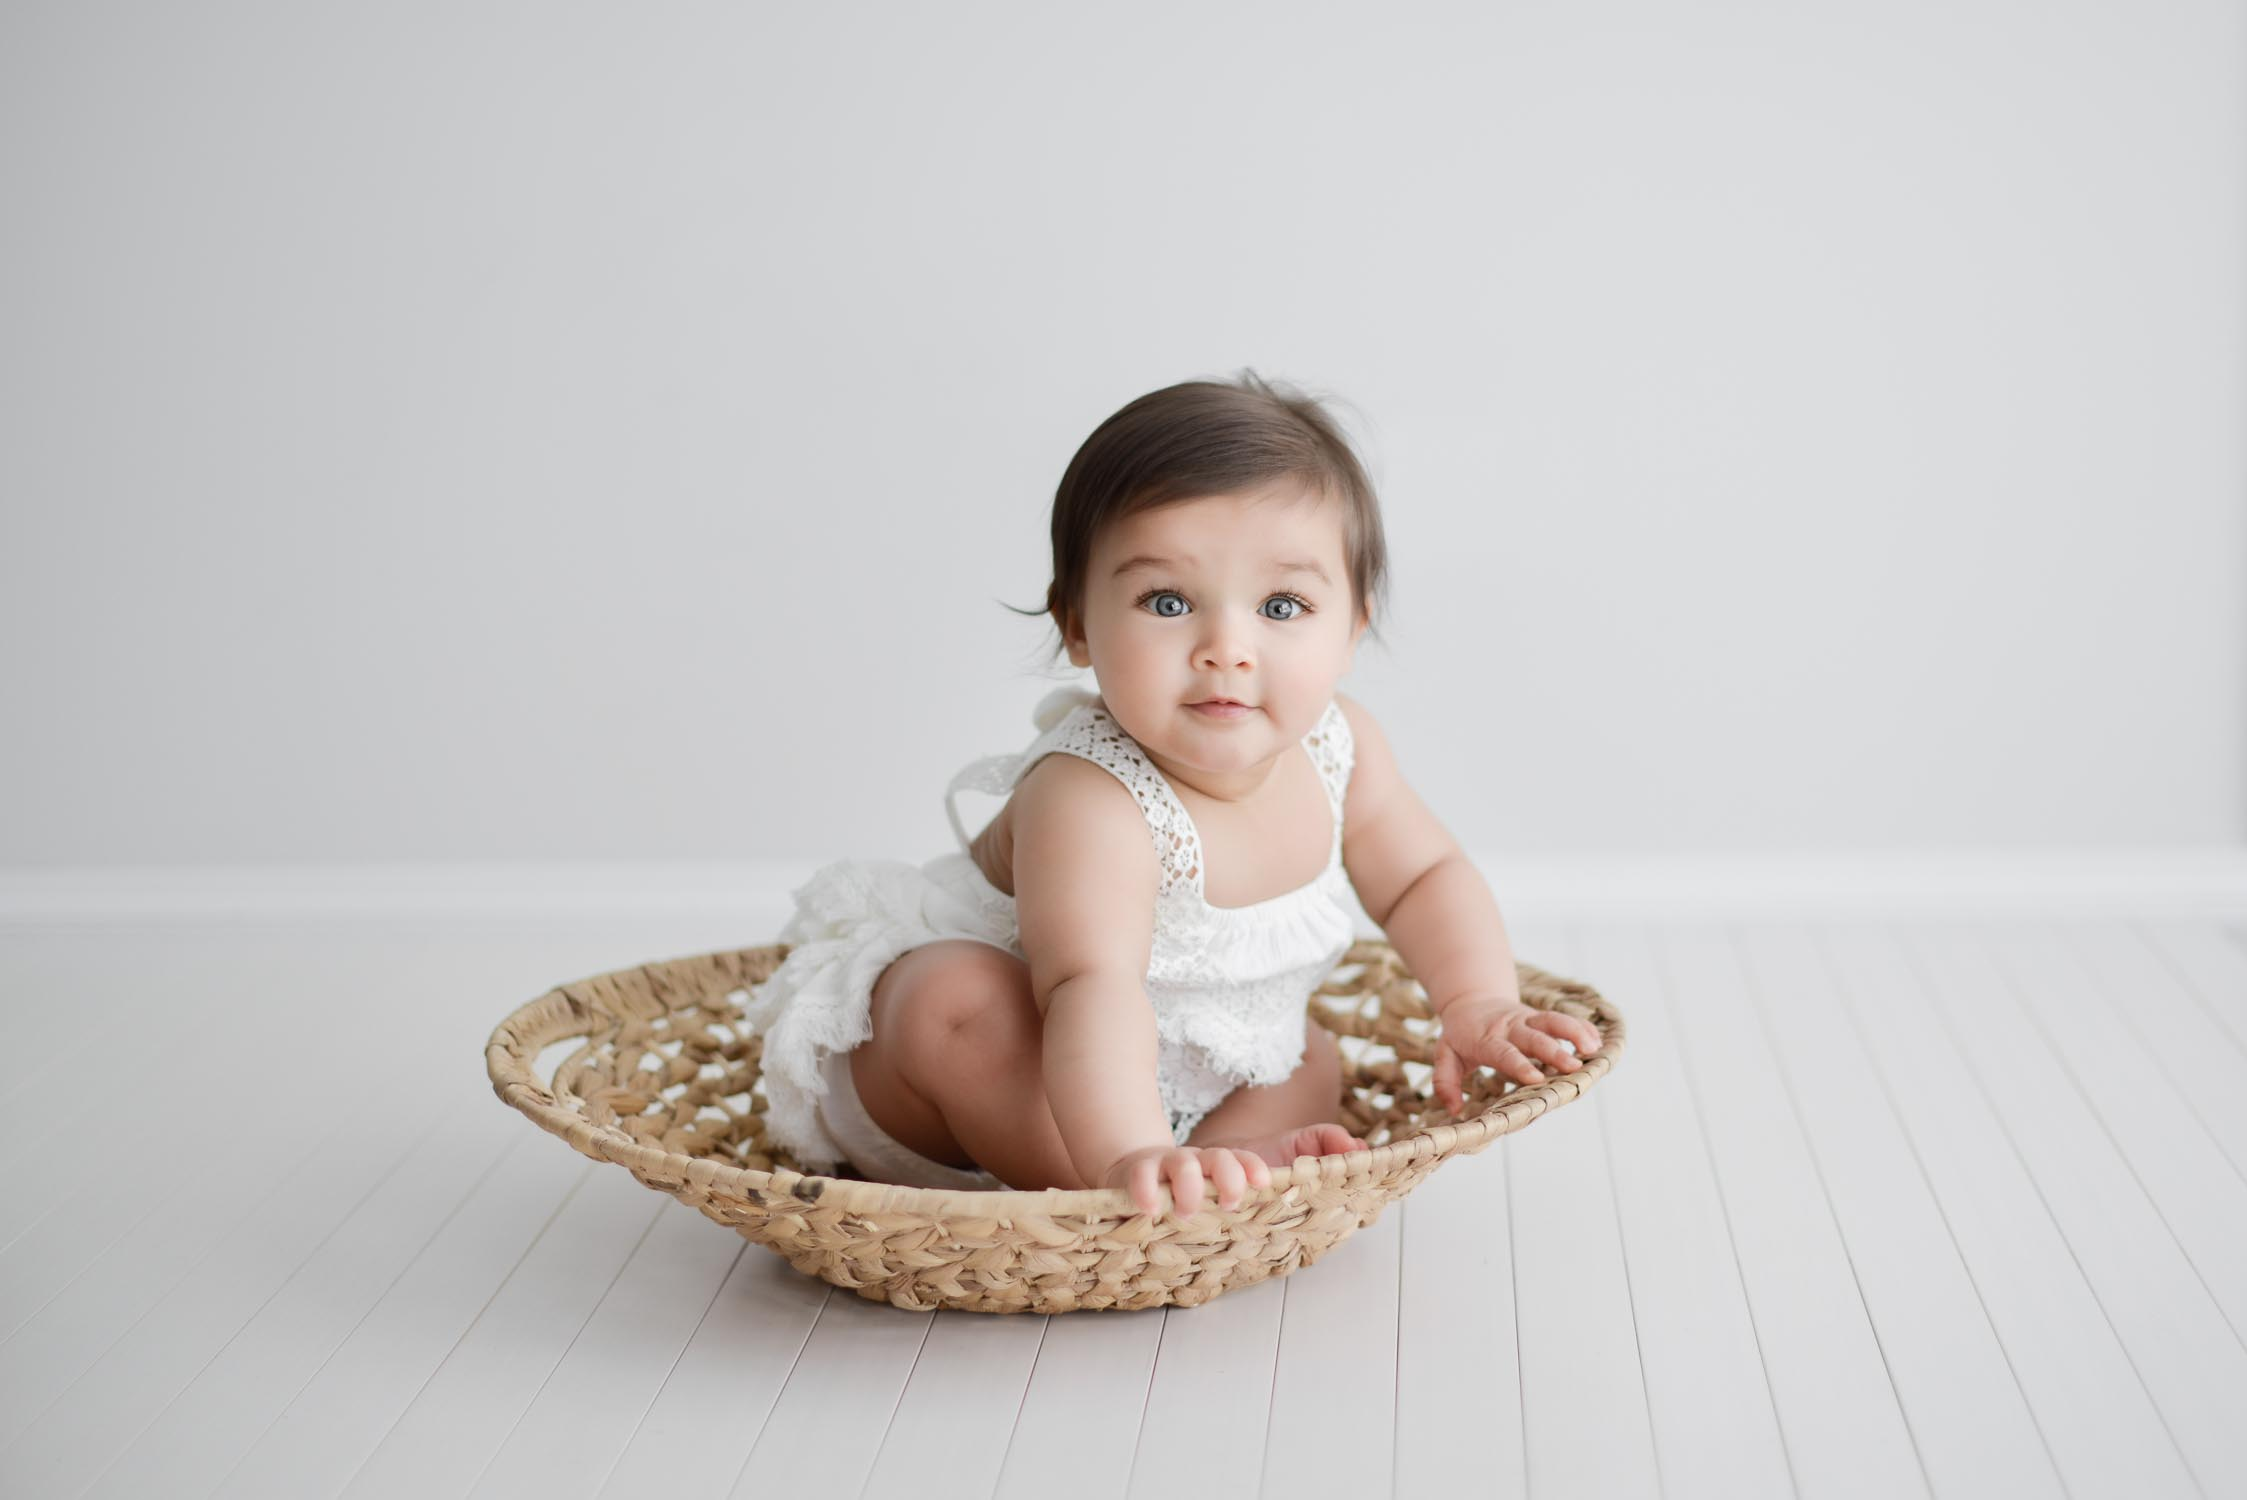 young baby sitting in shallow basket in photography studio looking at camera